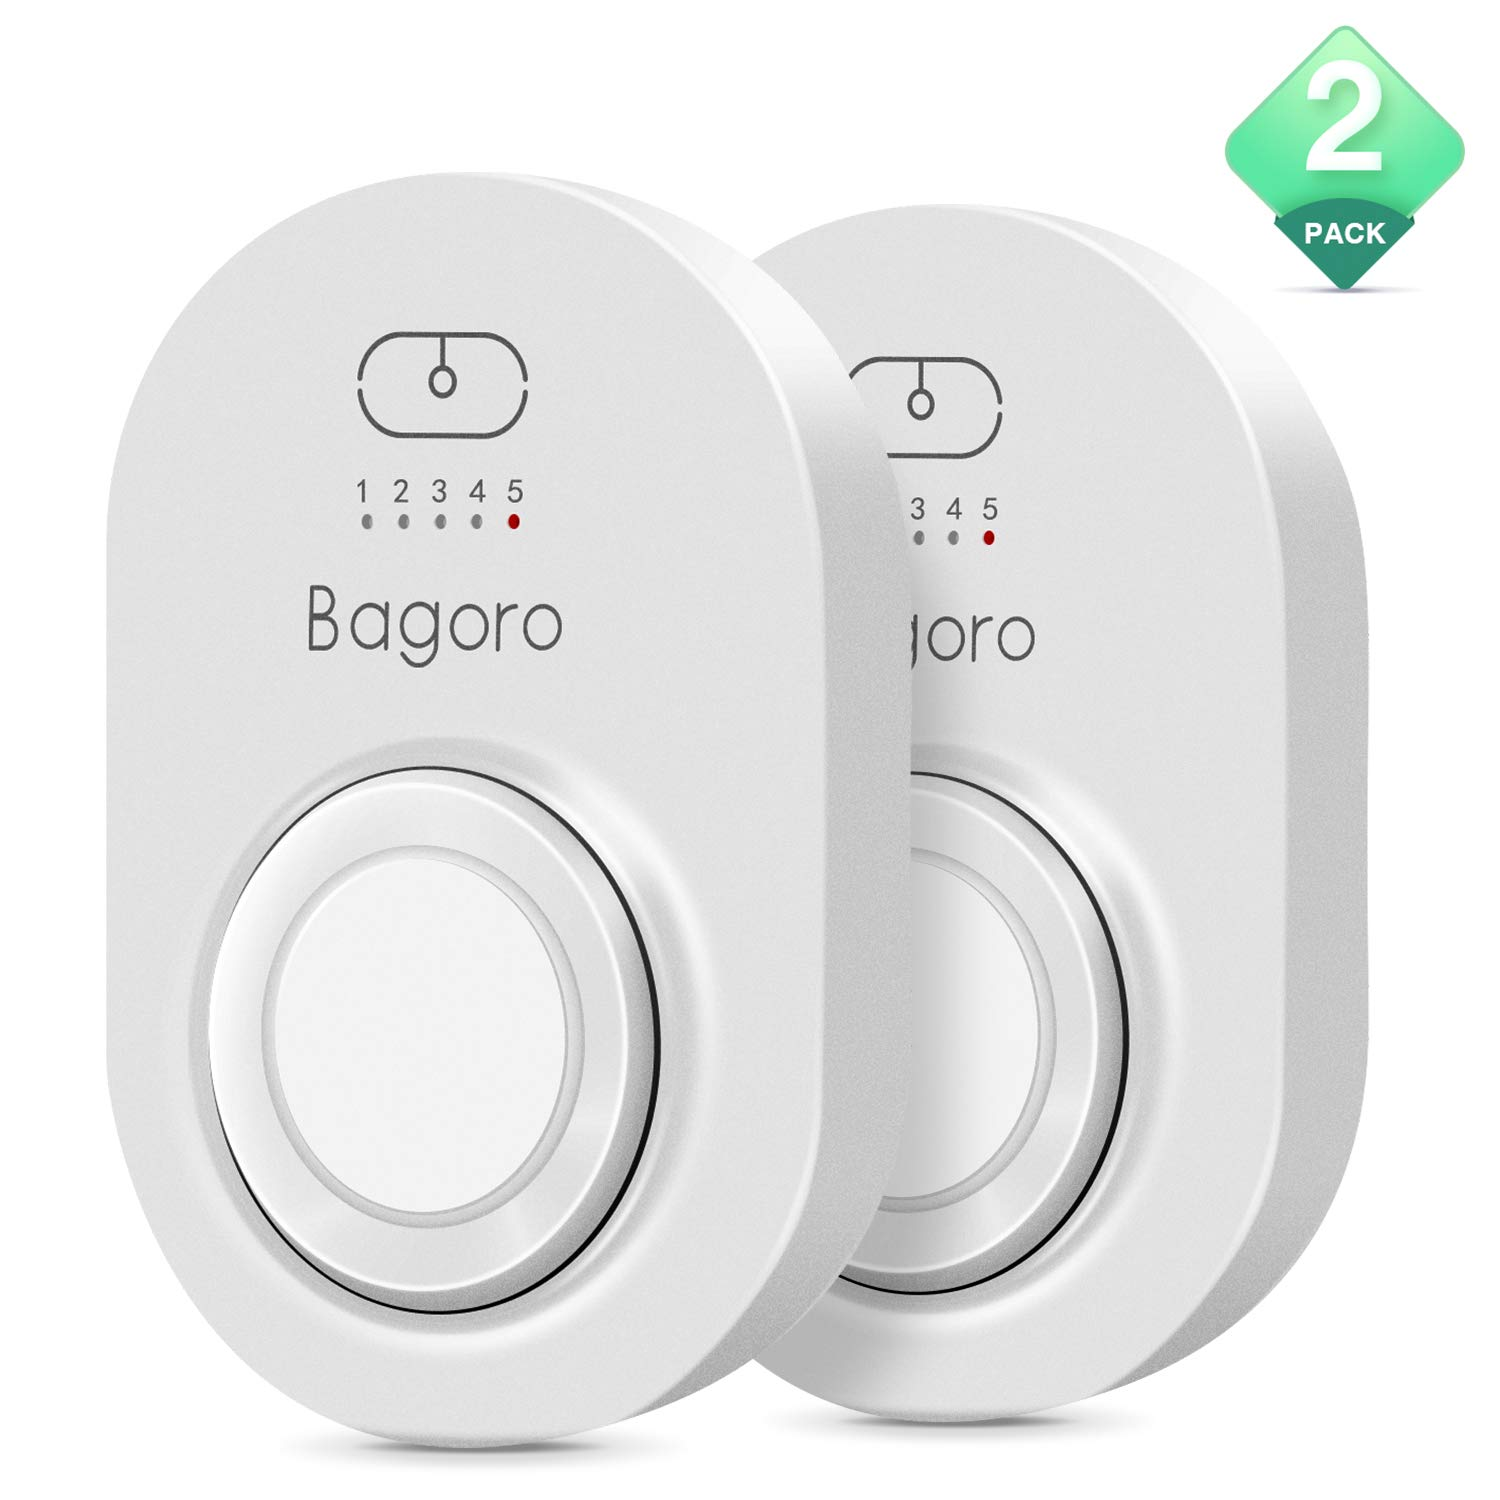 Ultrasonic Pest Repeller,2pack Electronic and Ultrasound Pest Repellent Plug in,Pest Defender for Anti Mice Rats, Rockroaches, Spiders, Fleas, Insects, Mosquitoes and More, Safe & Quiet Pest Control I